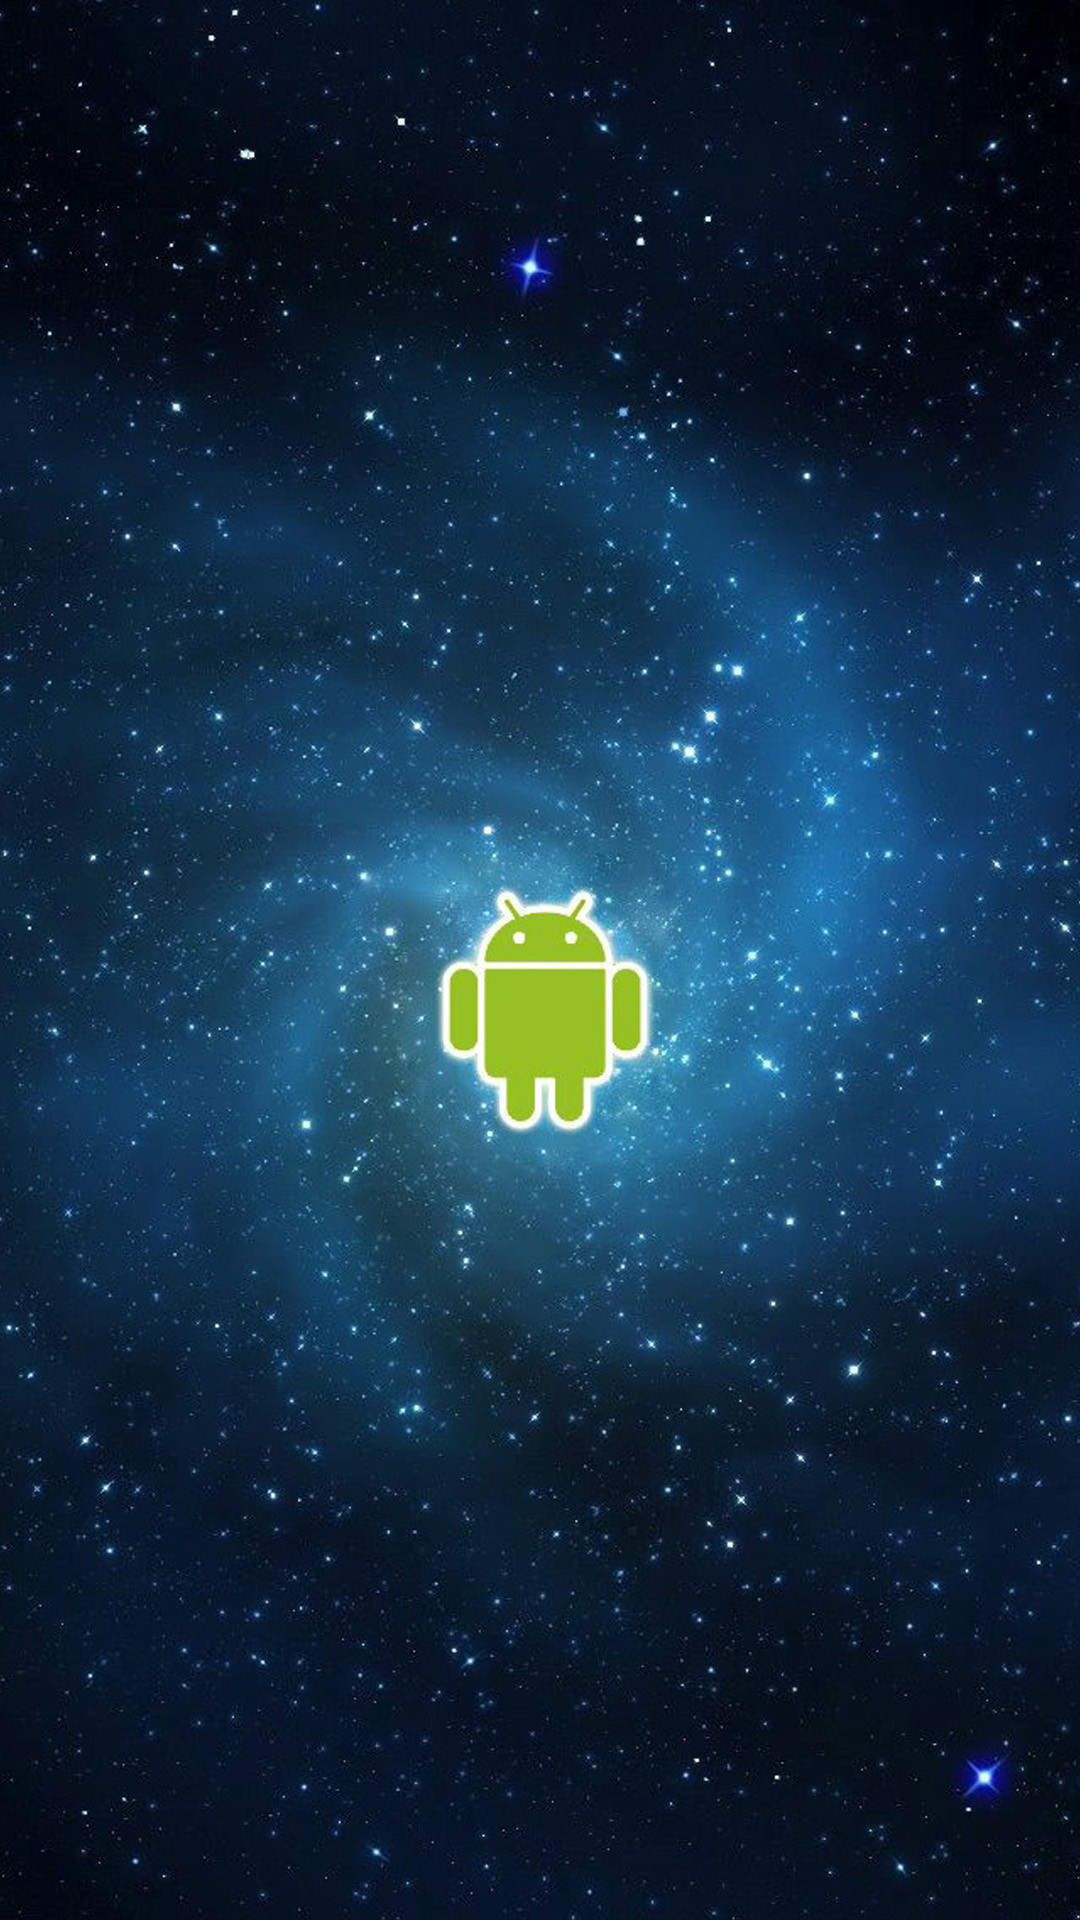 Android Logo Galaxy Universe Android Wallpaper …